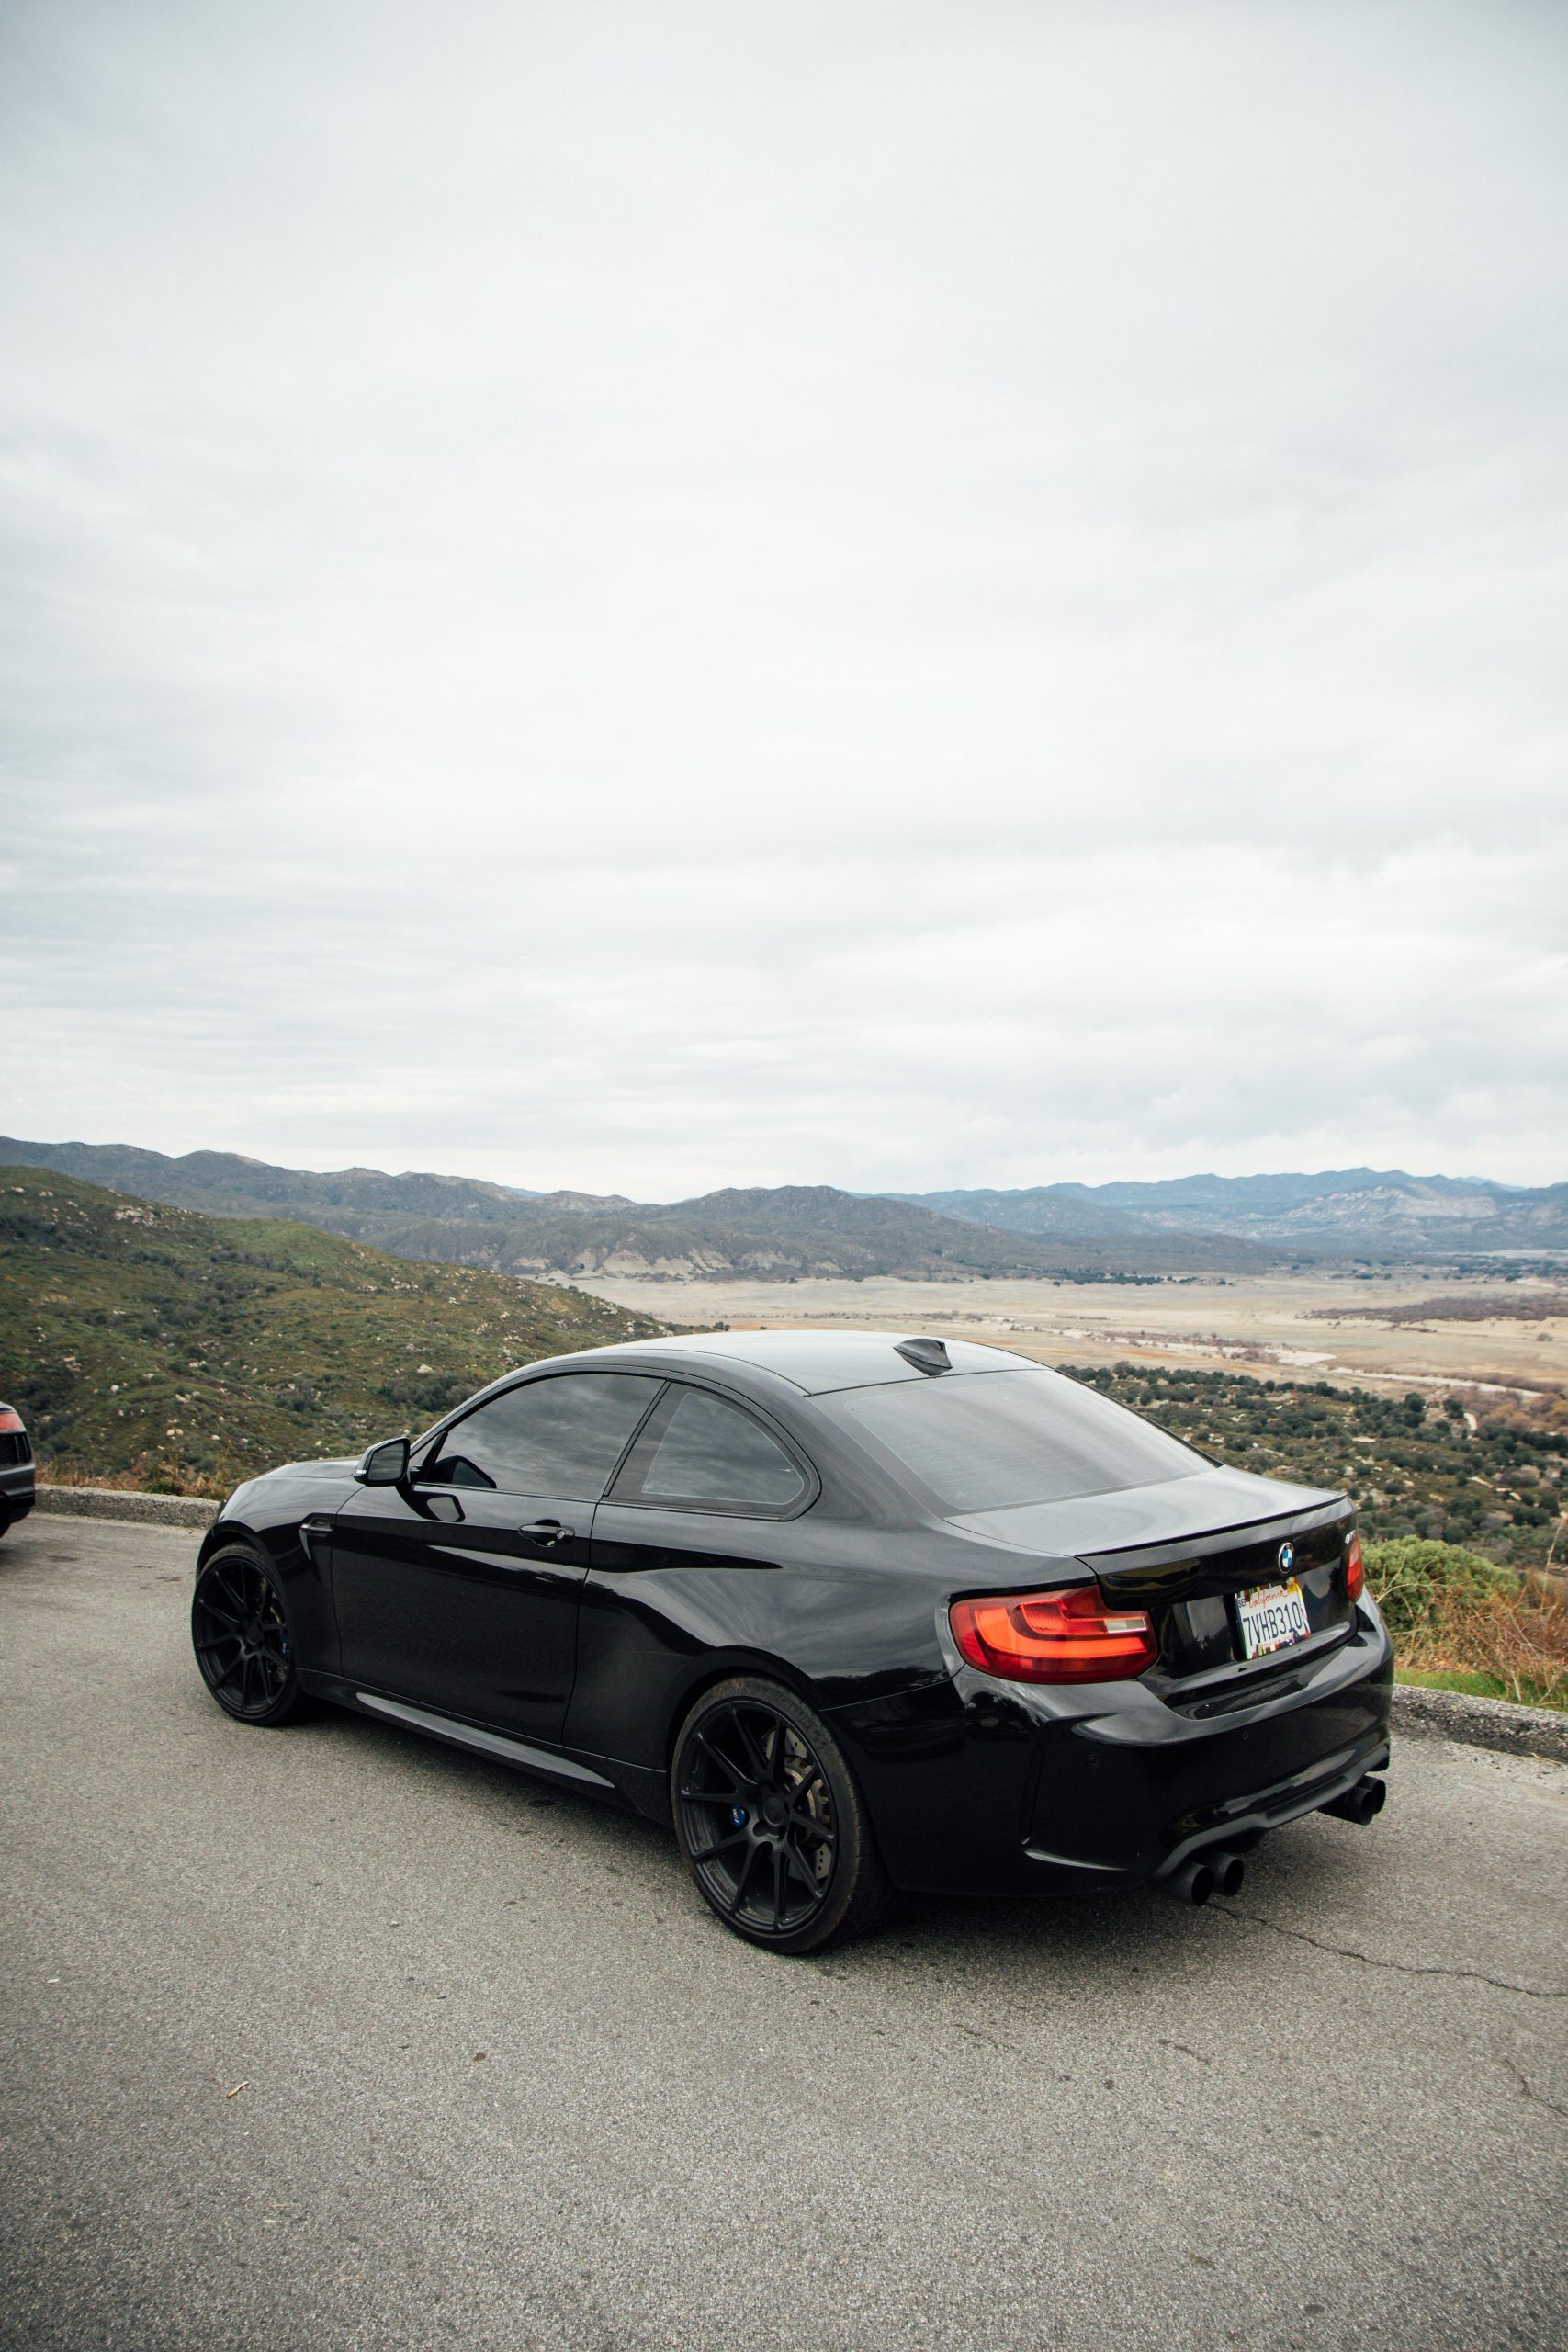 M2 Blacked Out BMW